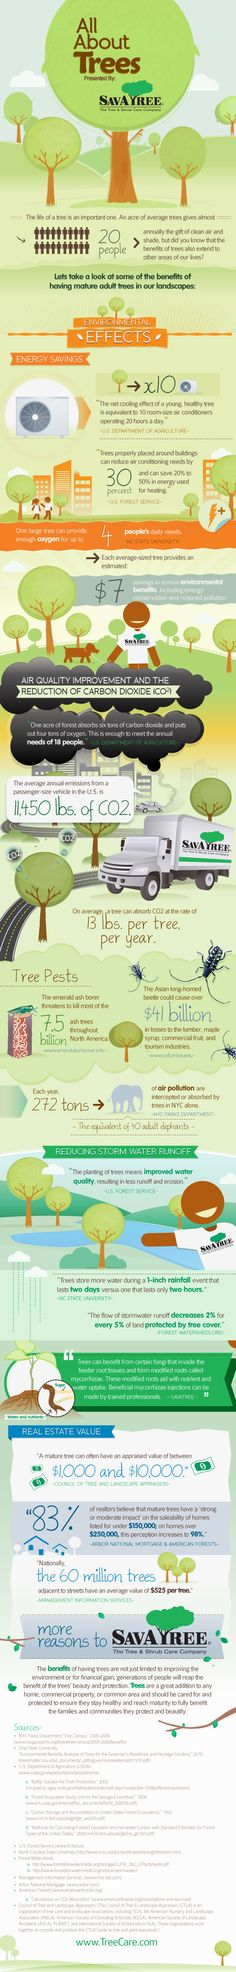 Facts about trees: The net cooling effect of a young, healthy tree is equivalent to 10 room-size air conditioners operating 20 hours/day. http://newswatch.nationalgeographic.com/2012/08/01/the-benefits-of-trees/